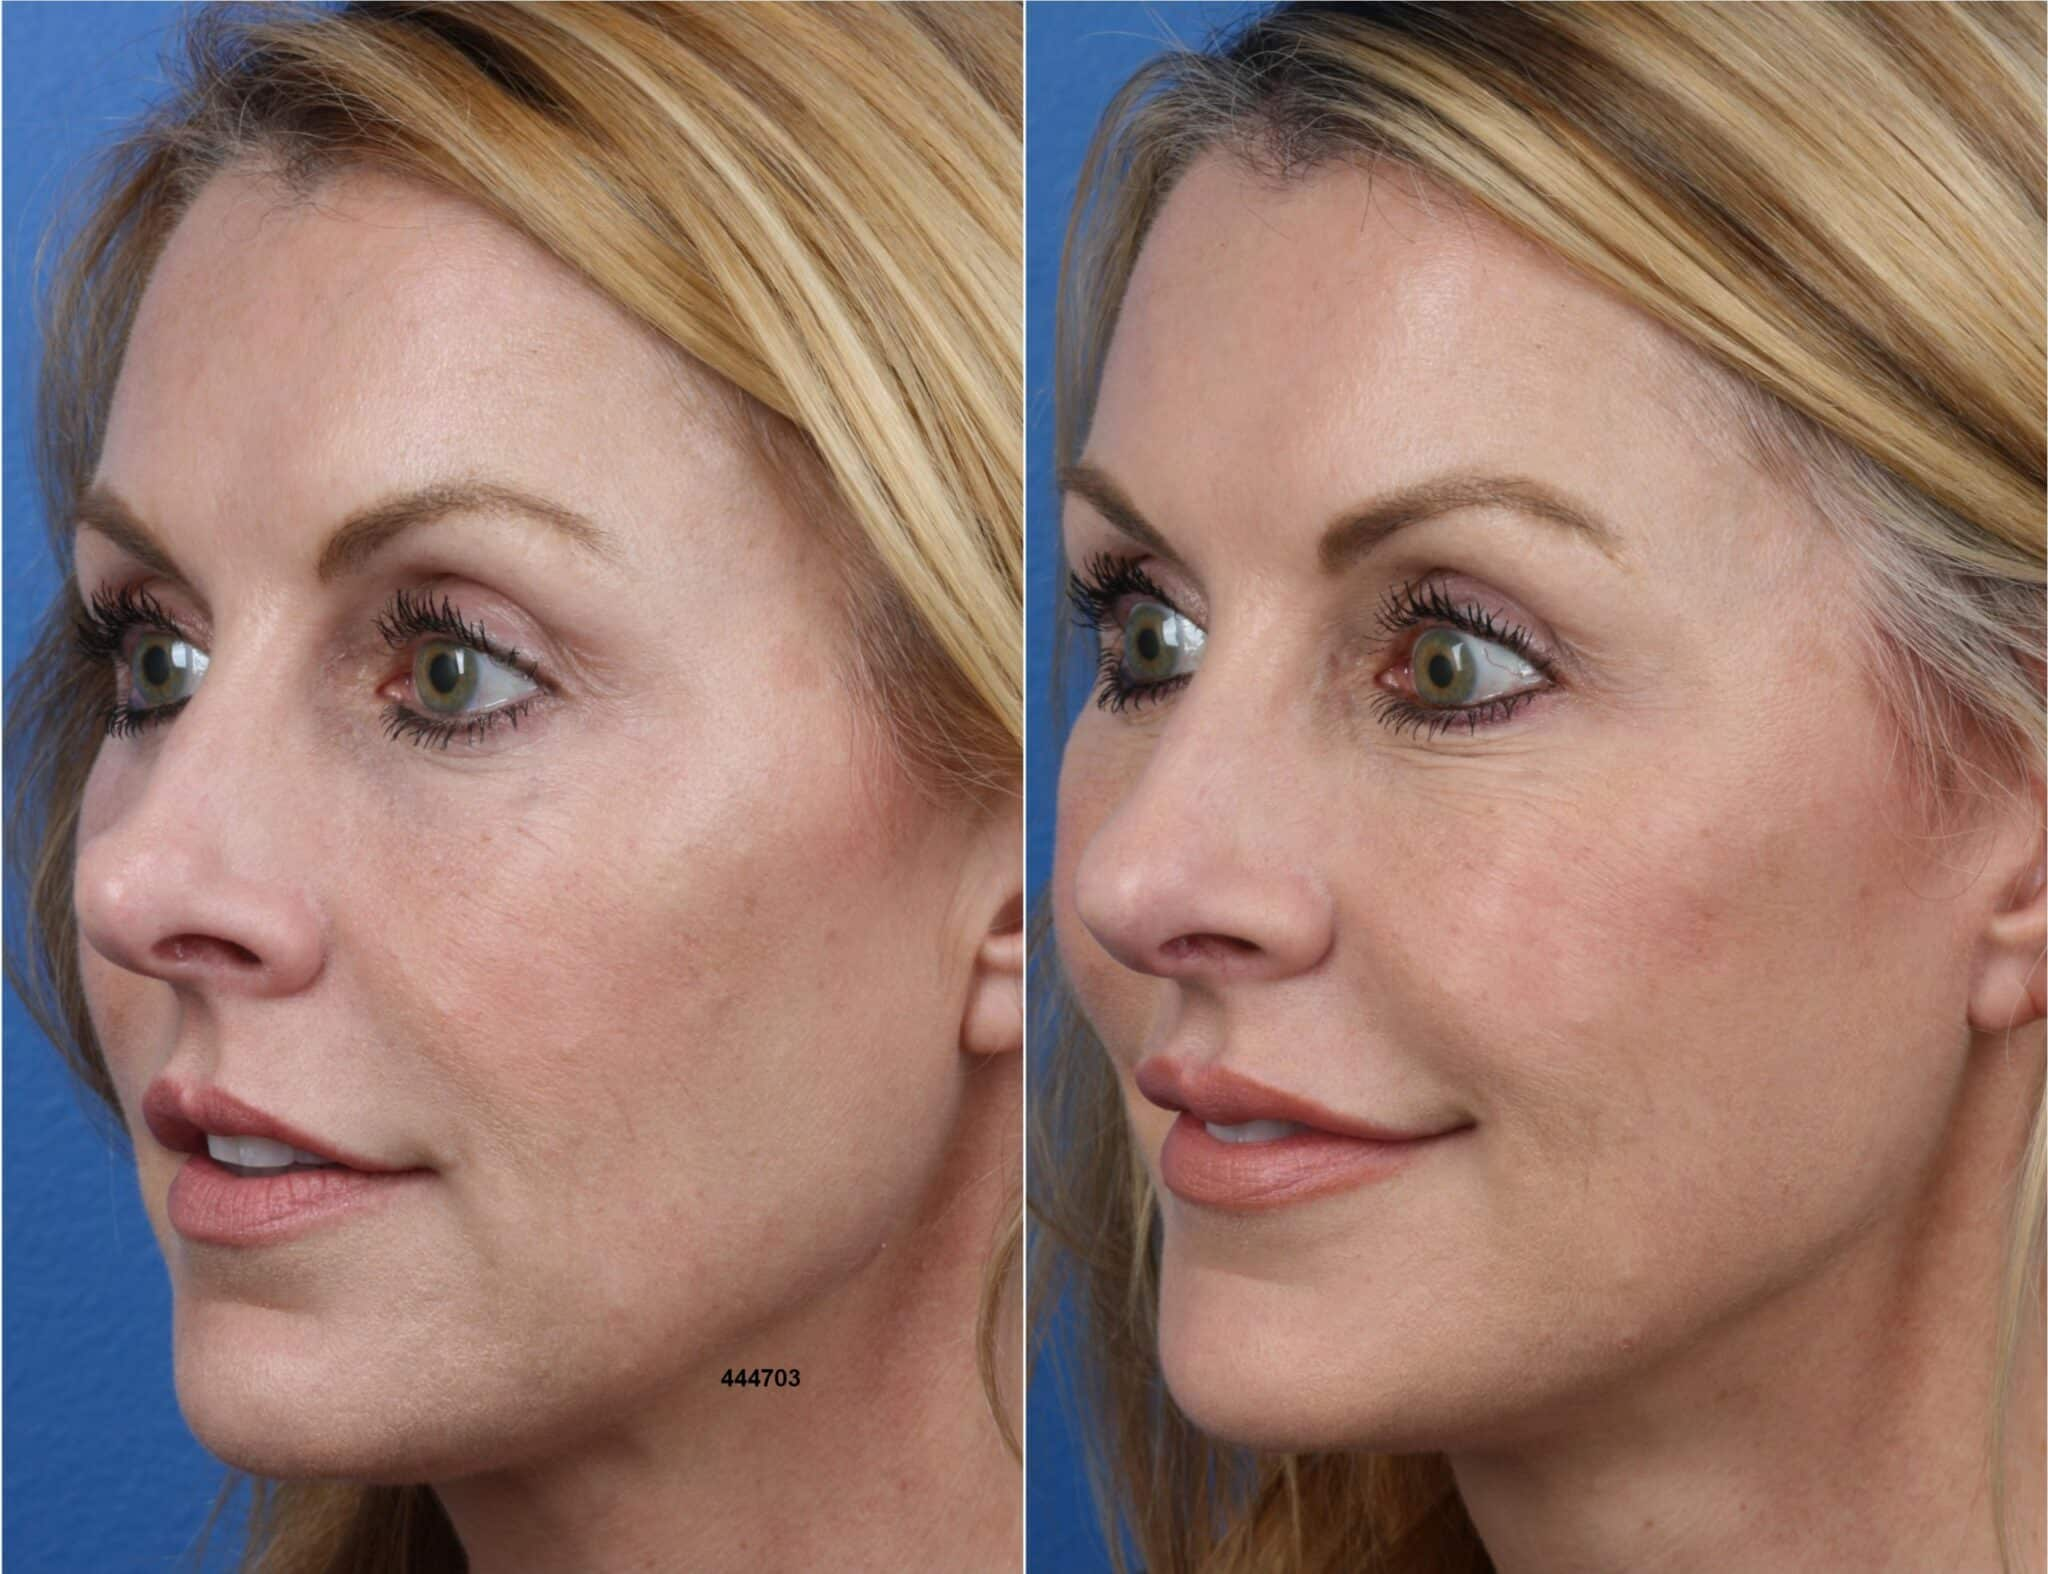 Rhinoplasty Using the NatraNose Technique by Dr. Miller